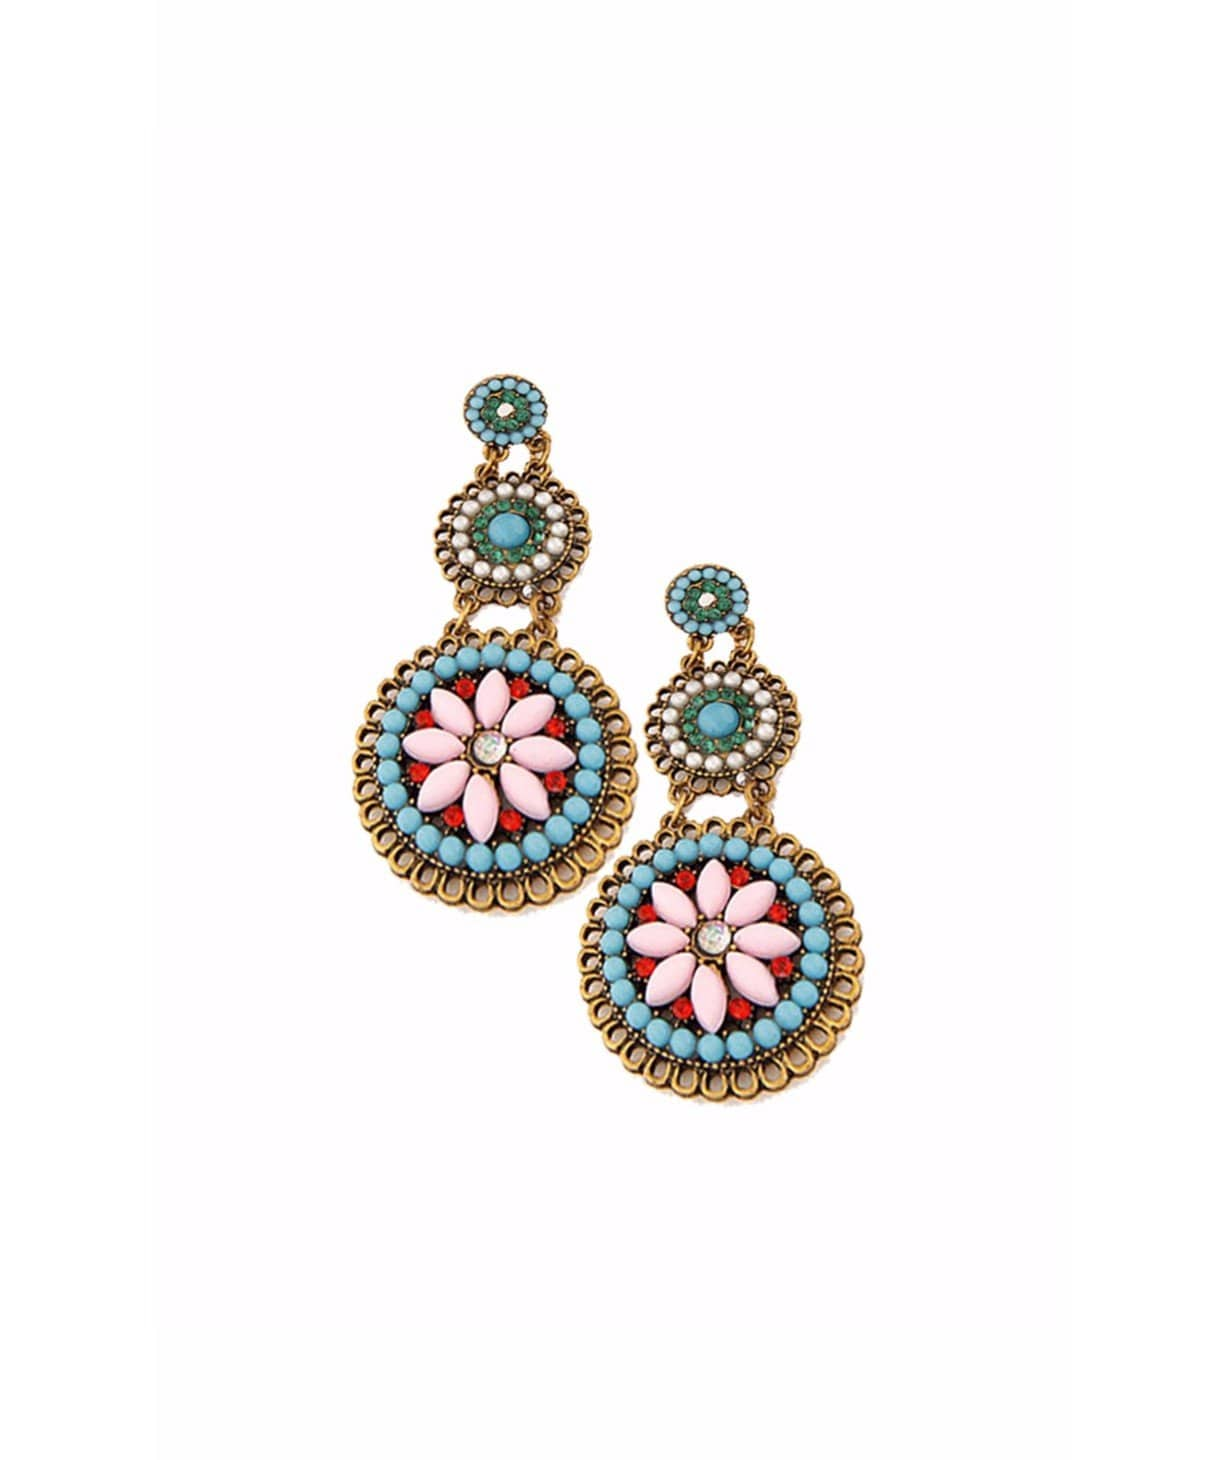 Ethnic Floral Earrings - Uptownie